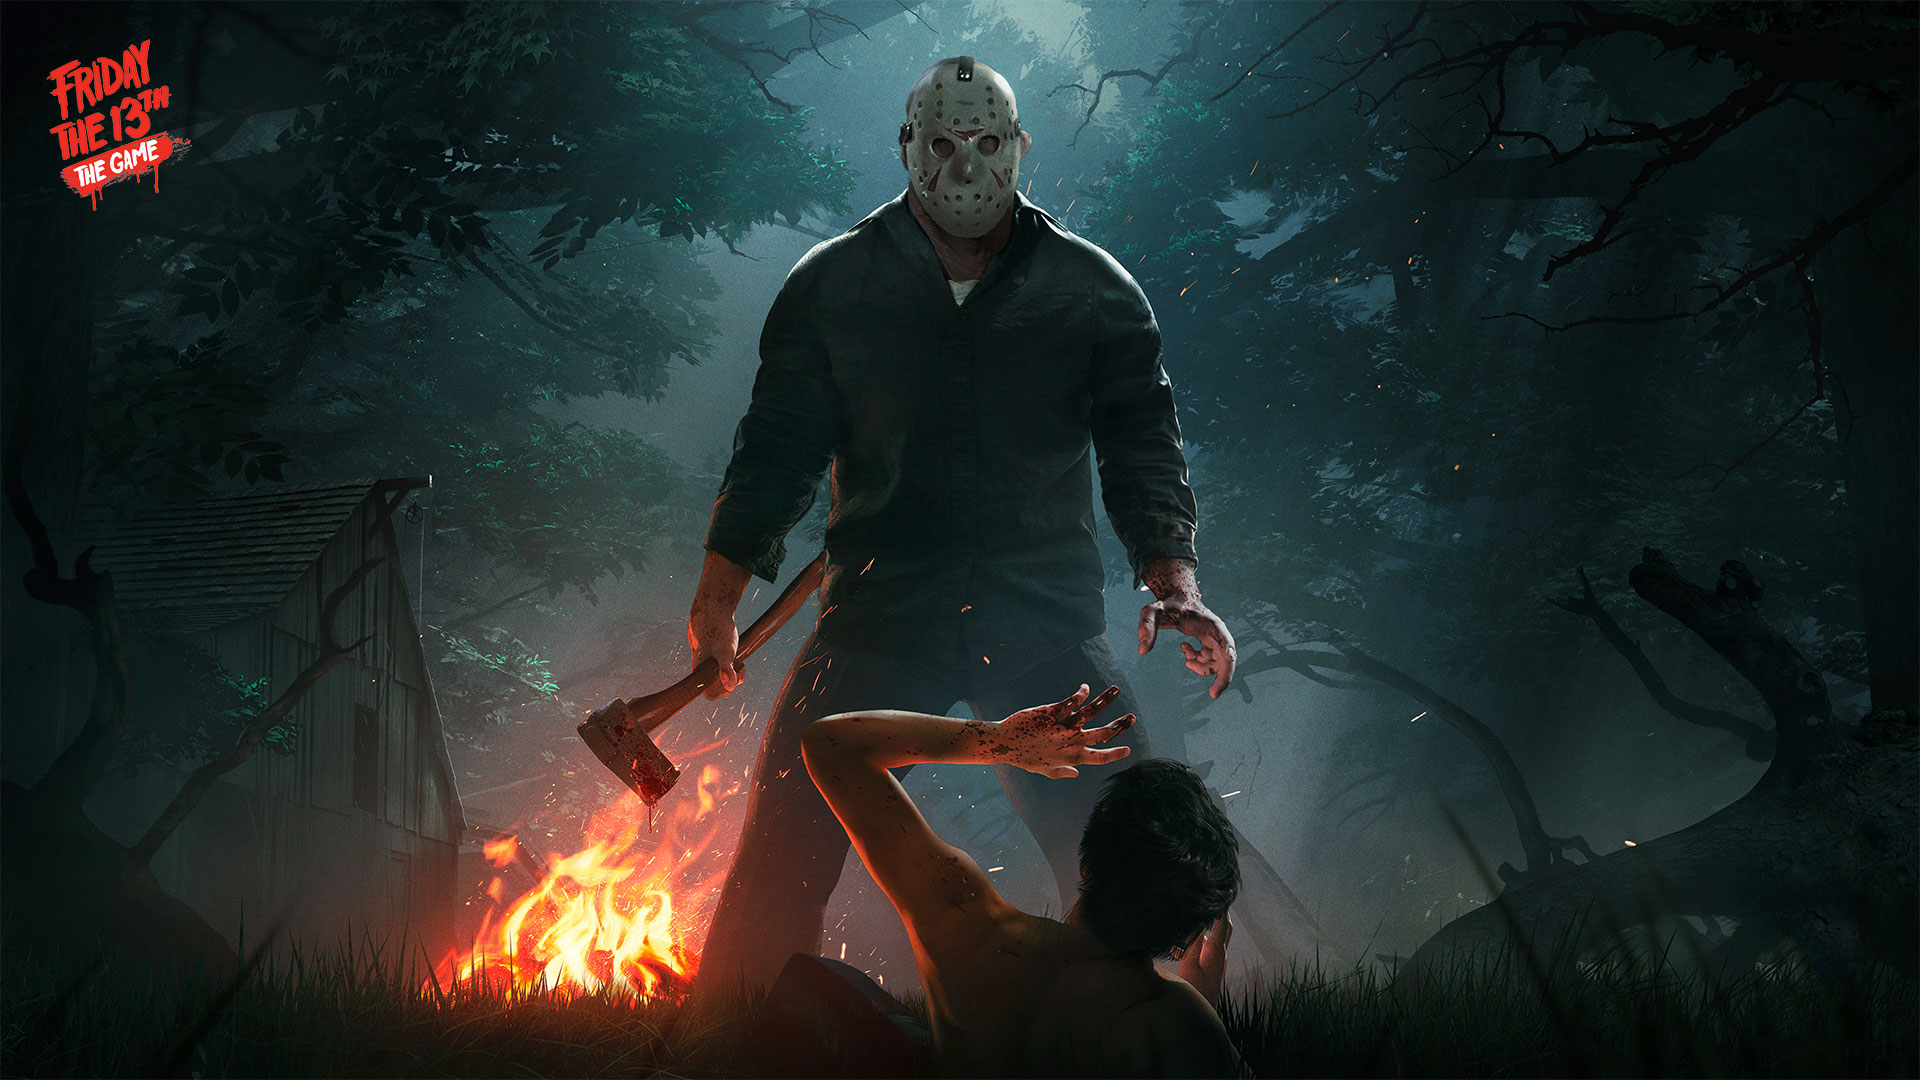 Friday the 13th the game 4K Wallpaper ...